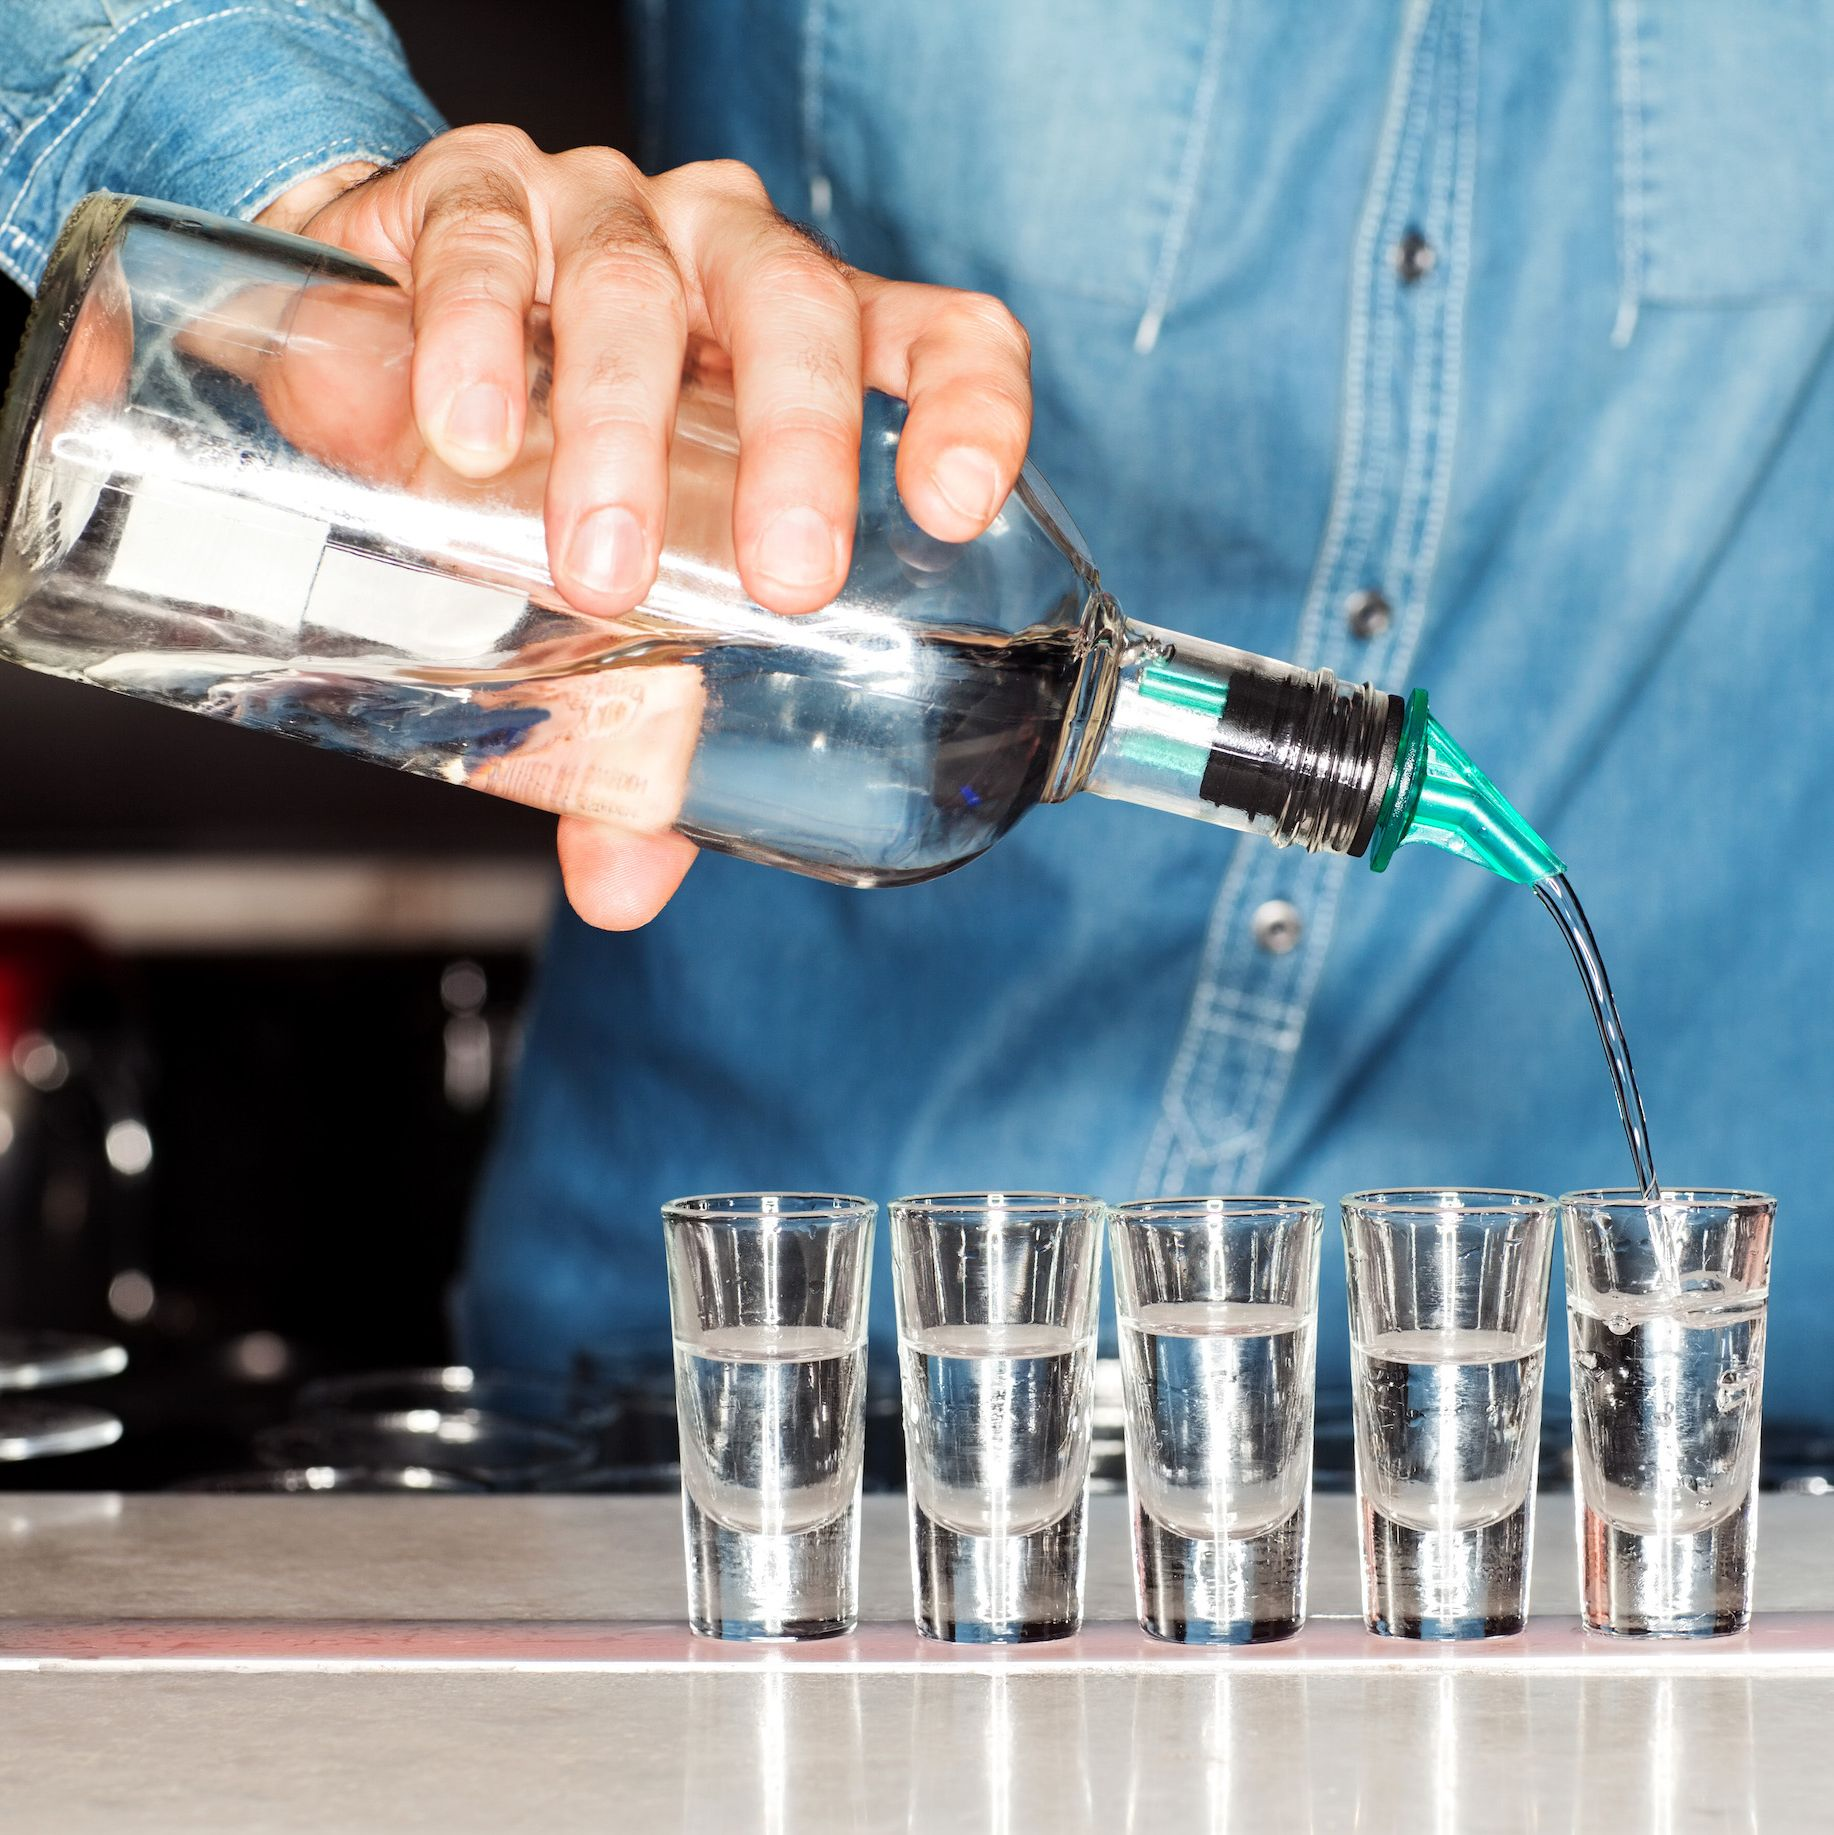 The 5 Steps to Drinking Vodka the Right Way